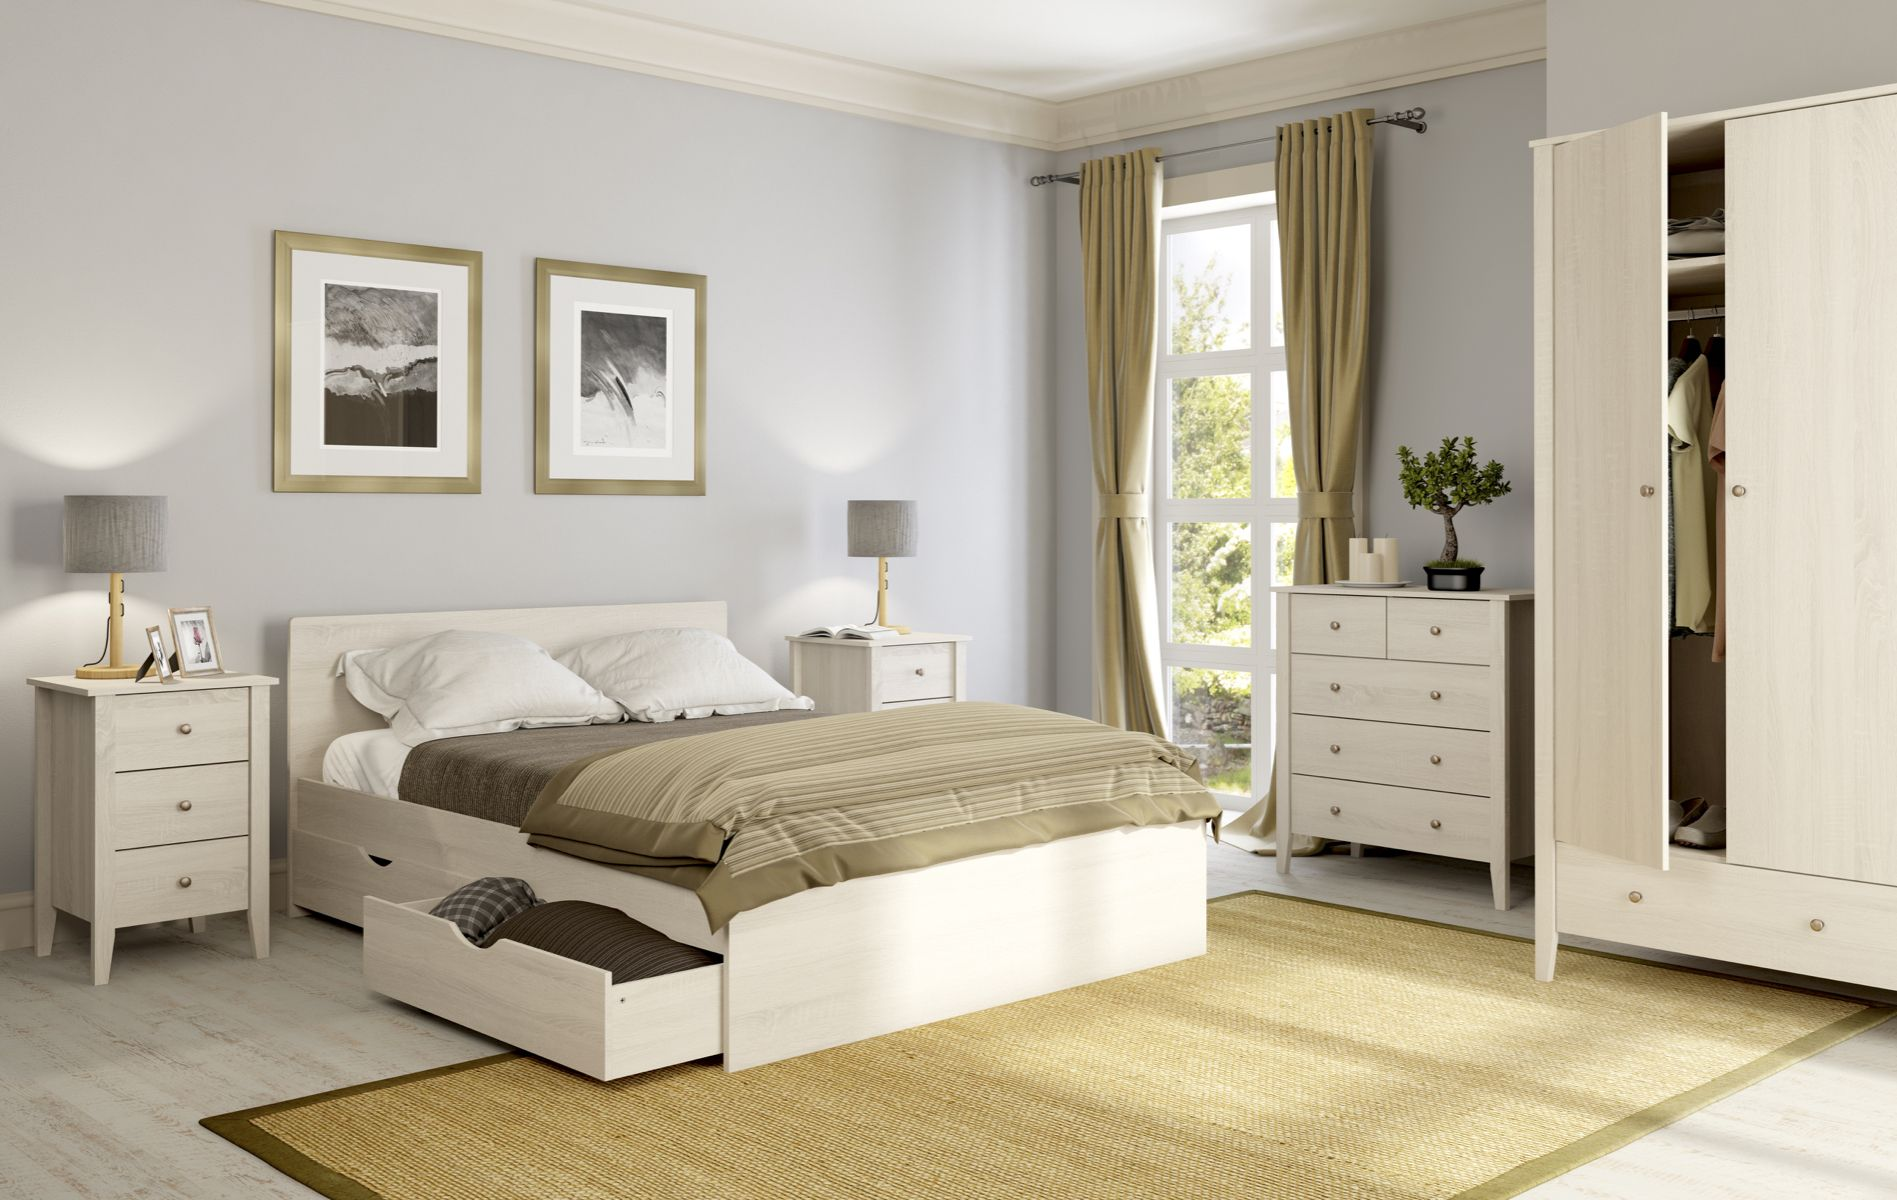 A Bed With Beautiful White Oak Finish And Quality Metal Fixings That Will Bring Natural Relaxed Feel To Your Bedroom